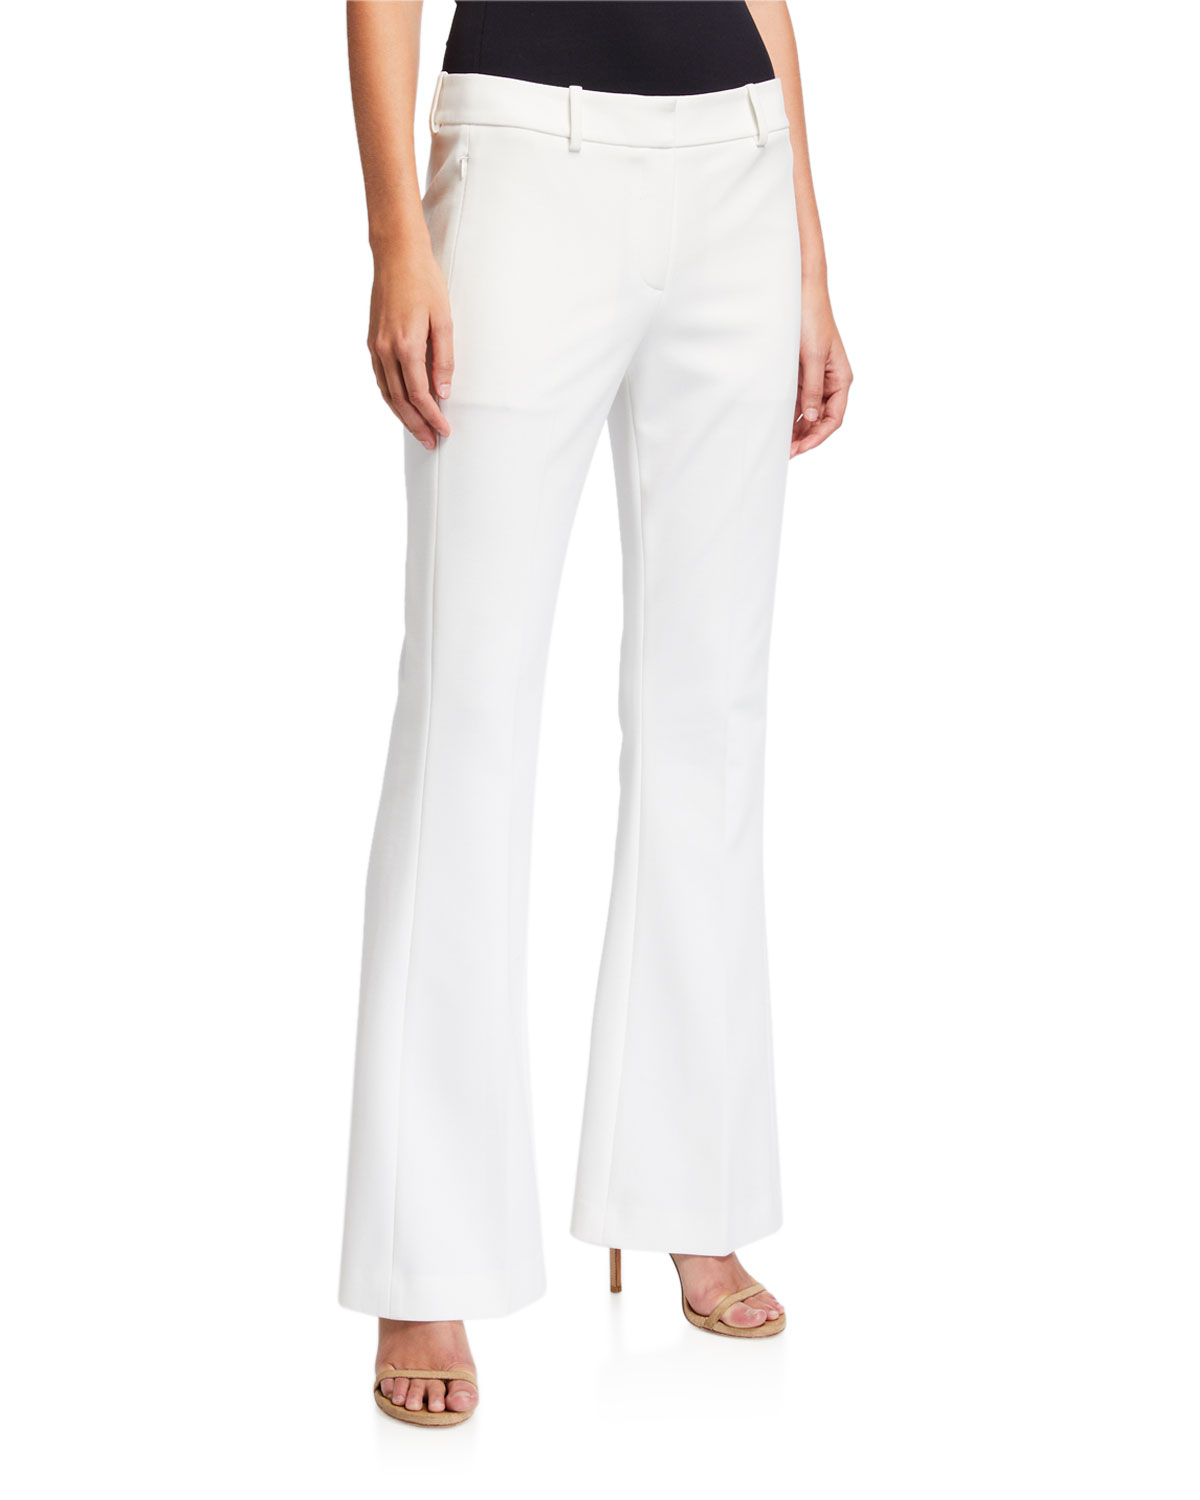 Elie Tahari Pants ANNA BOOT-CUT PANTS